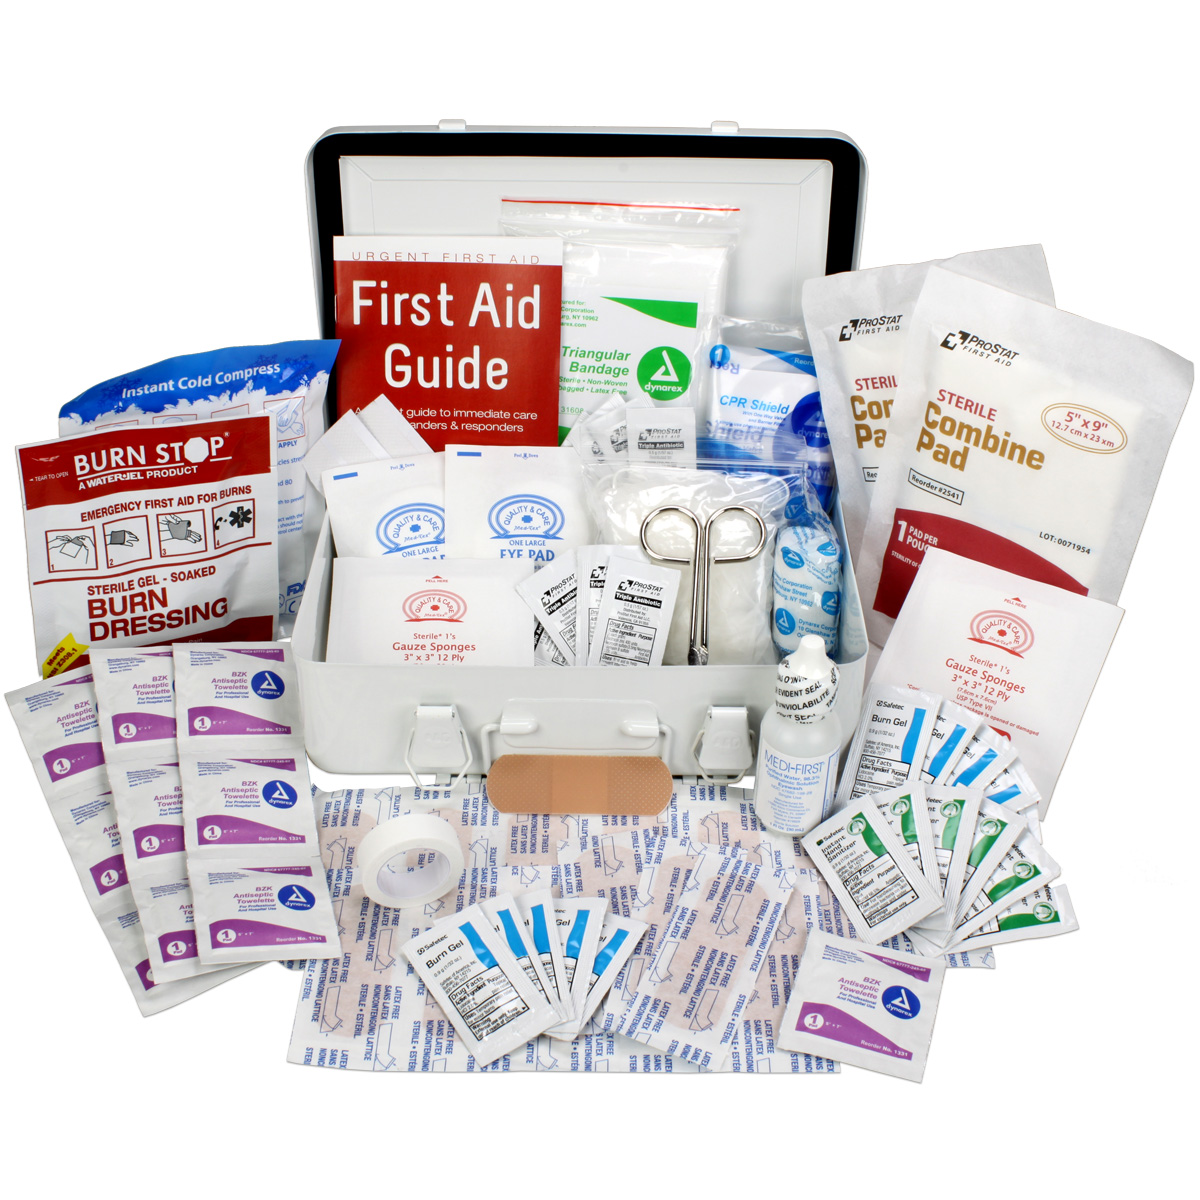 OSHA & ANSI First Aid Kit, 25 Person, 74 Pieces, Indoor/Outdoor Emergency Kit for Office, Home or Car, ANSI 2015 Class A, Metal, Made in USA